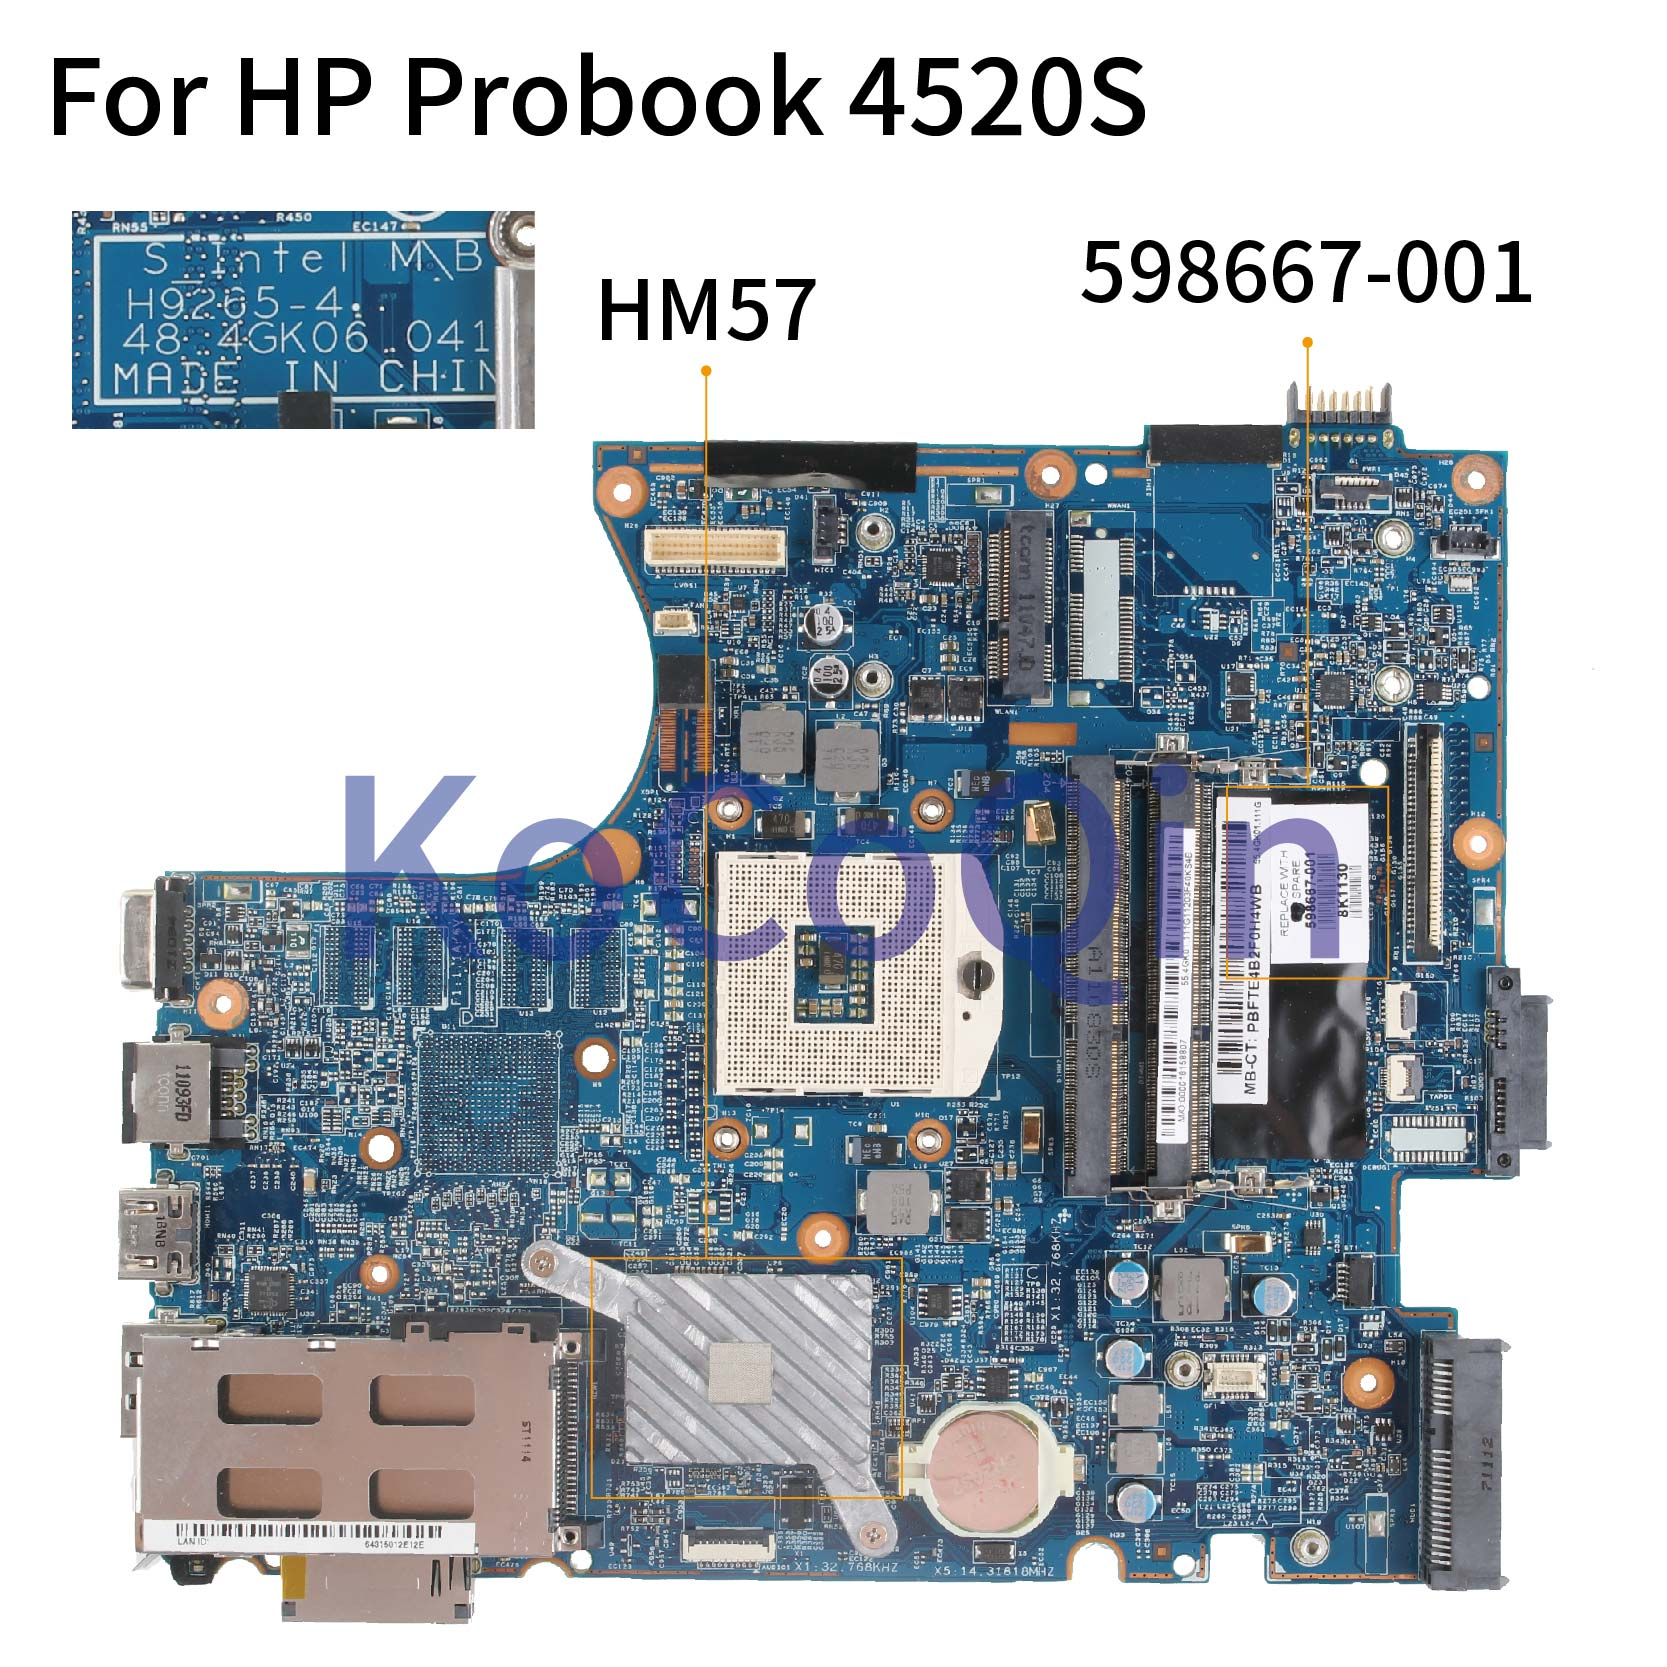 KoCoQin Laptop Motherboard For HP Probook 4520S 4720S HM57 Mainboard 598667-001 598667-501 H9265-1 48.4GK06.041